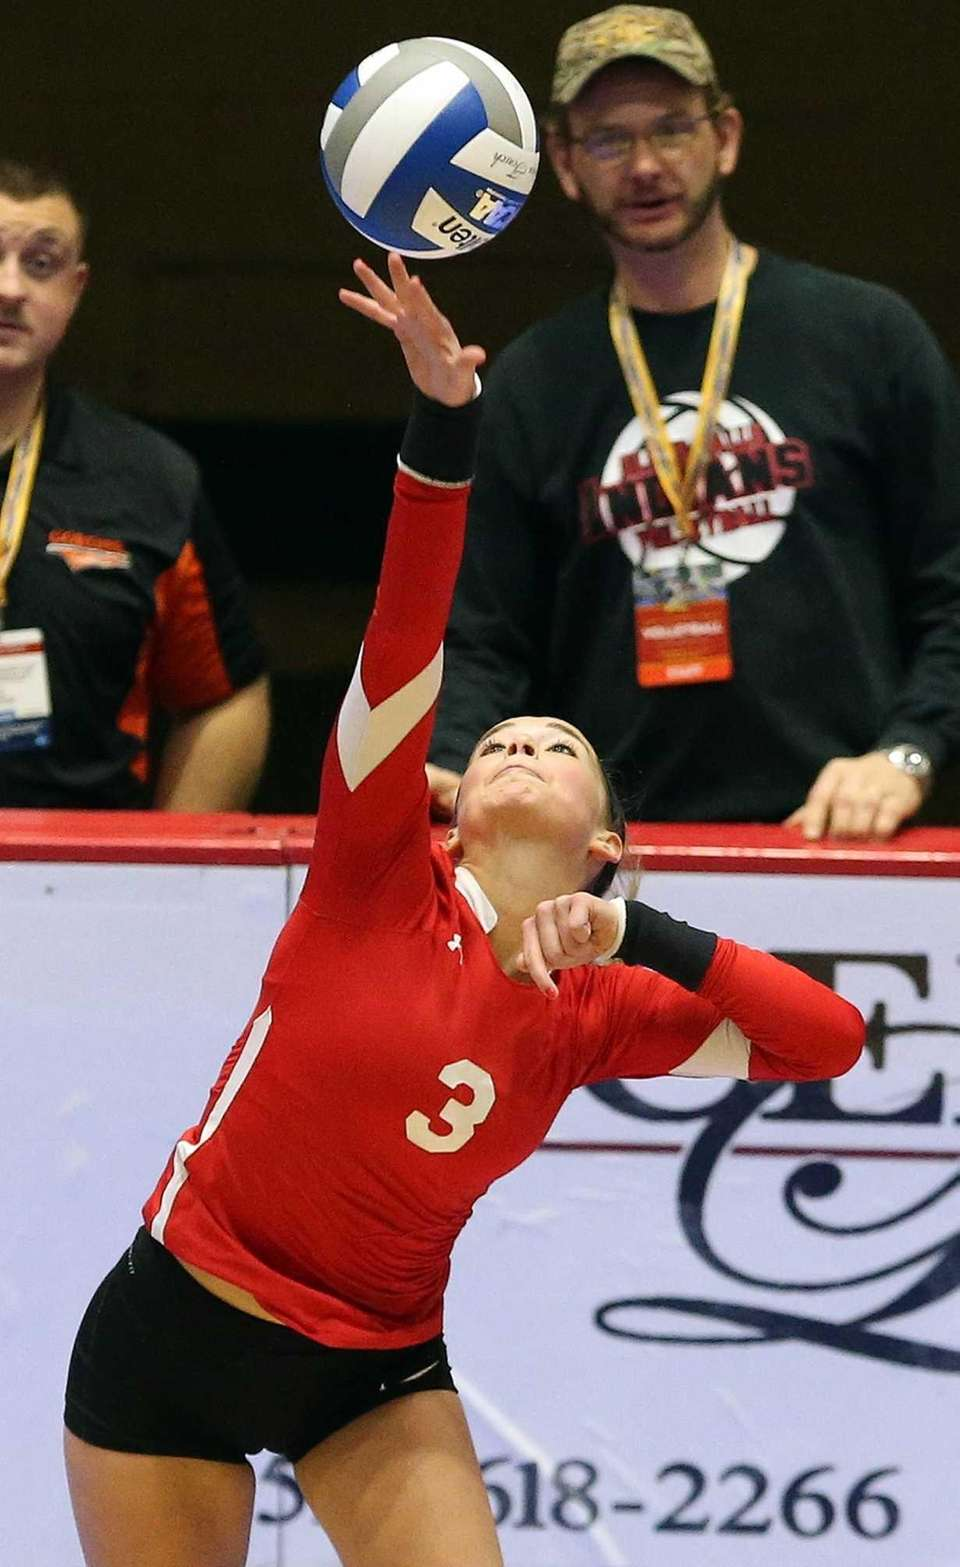 Connetquot's Taylor Cole with the serve during the